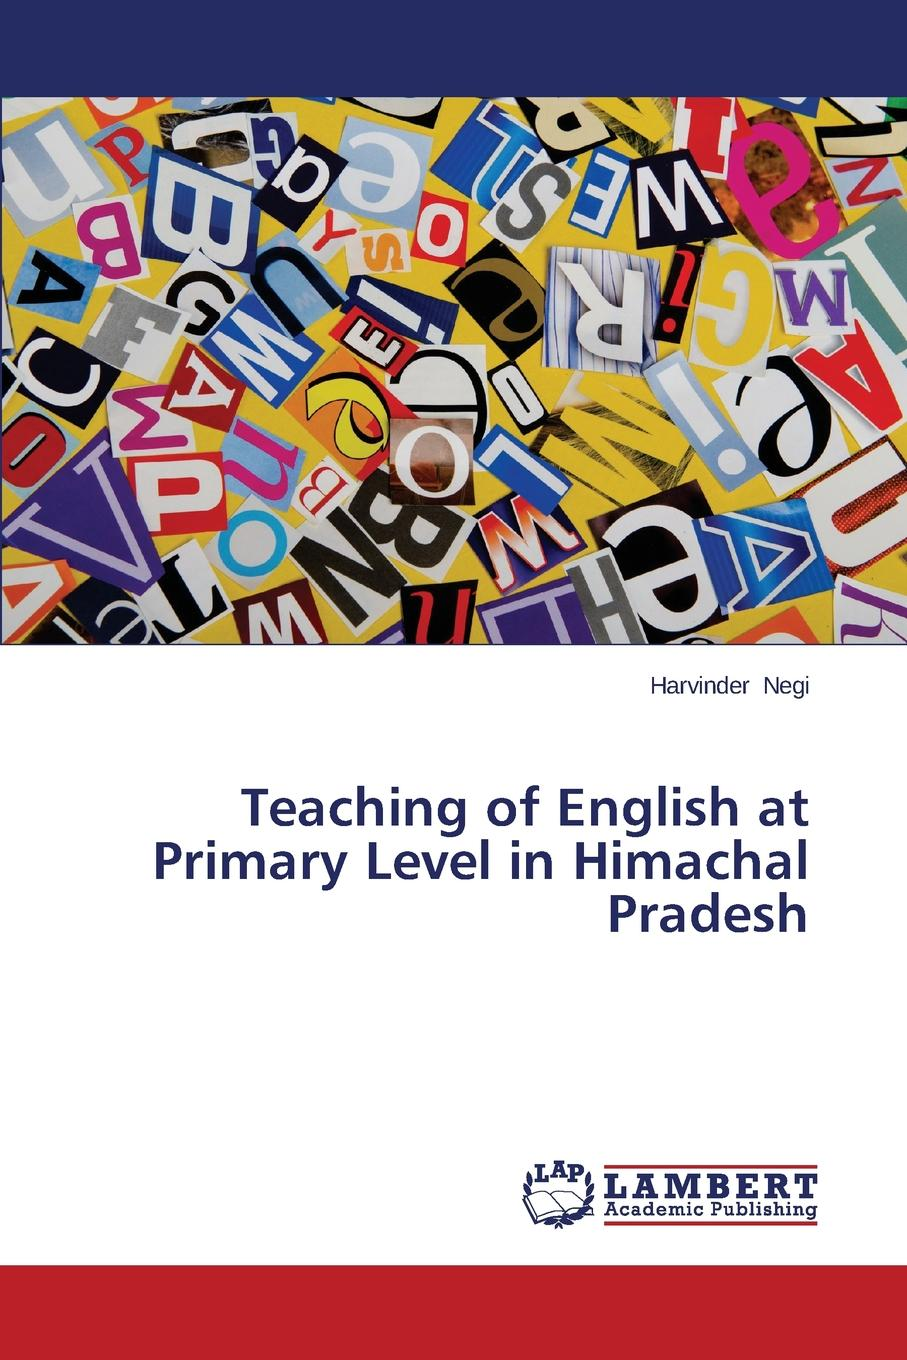 Negi Harvinder Teaching of English at Primary Level in Himachal Pradesh